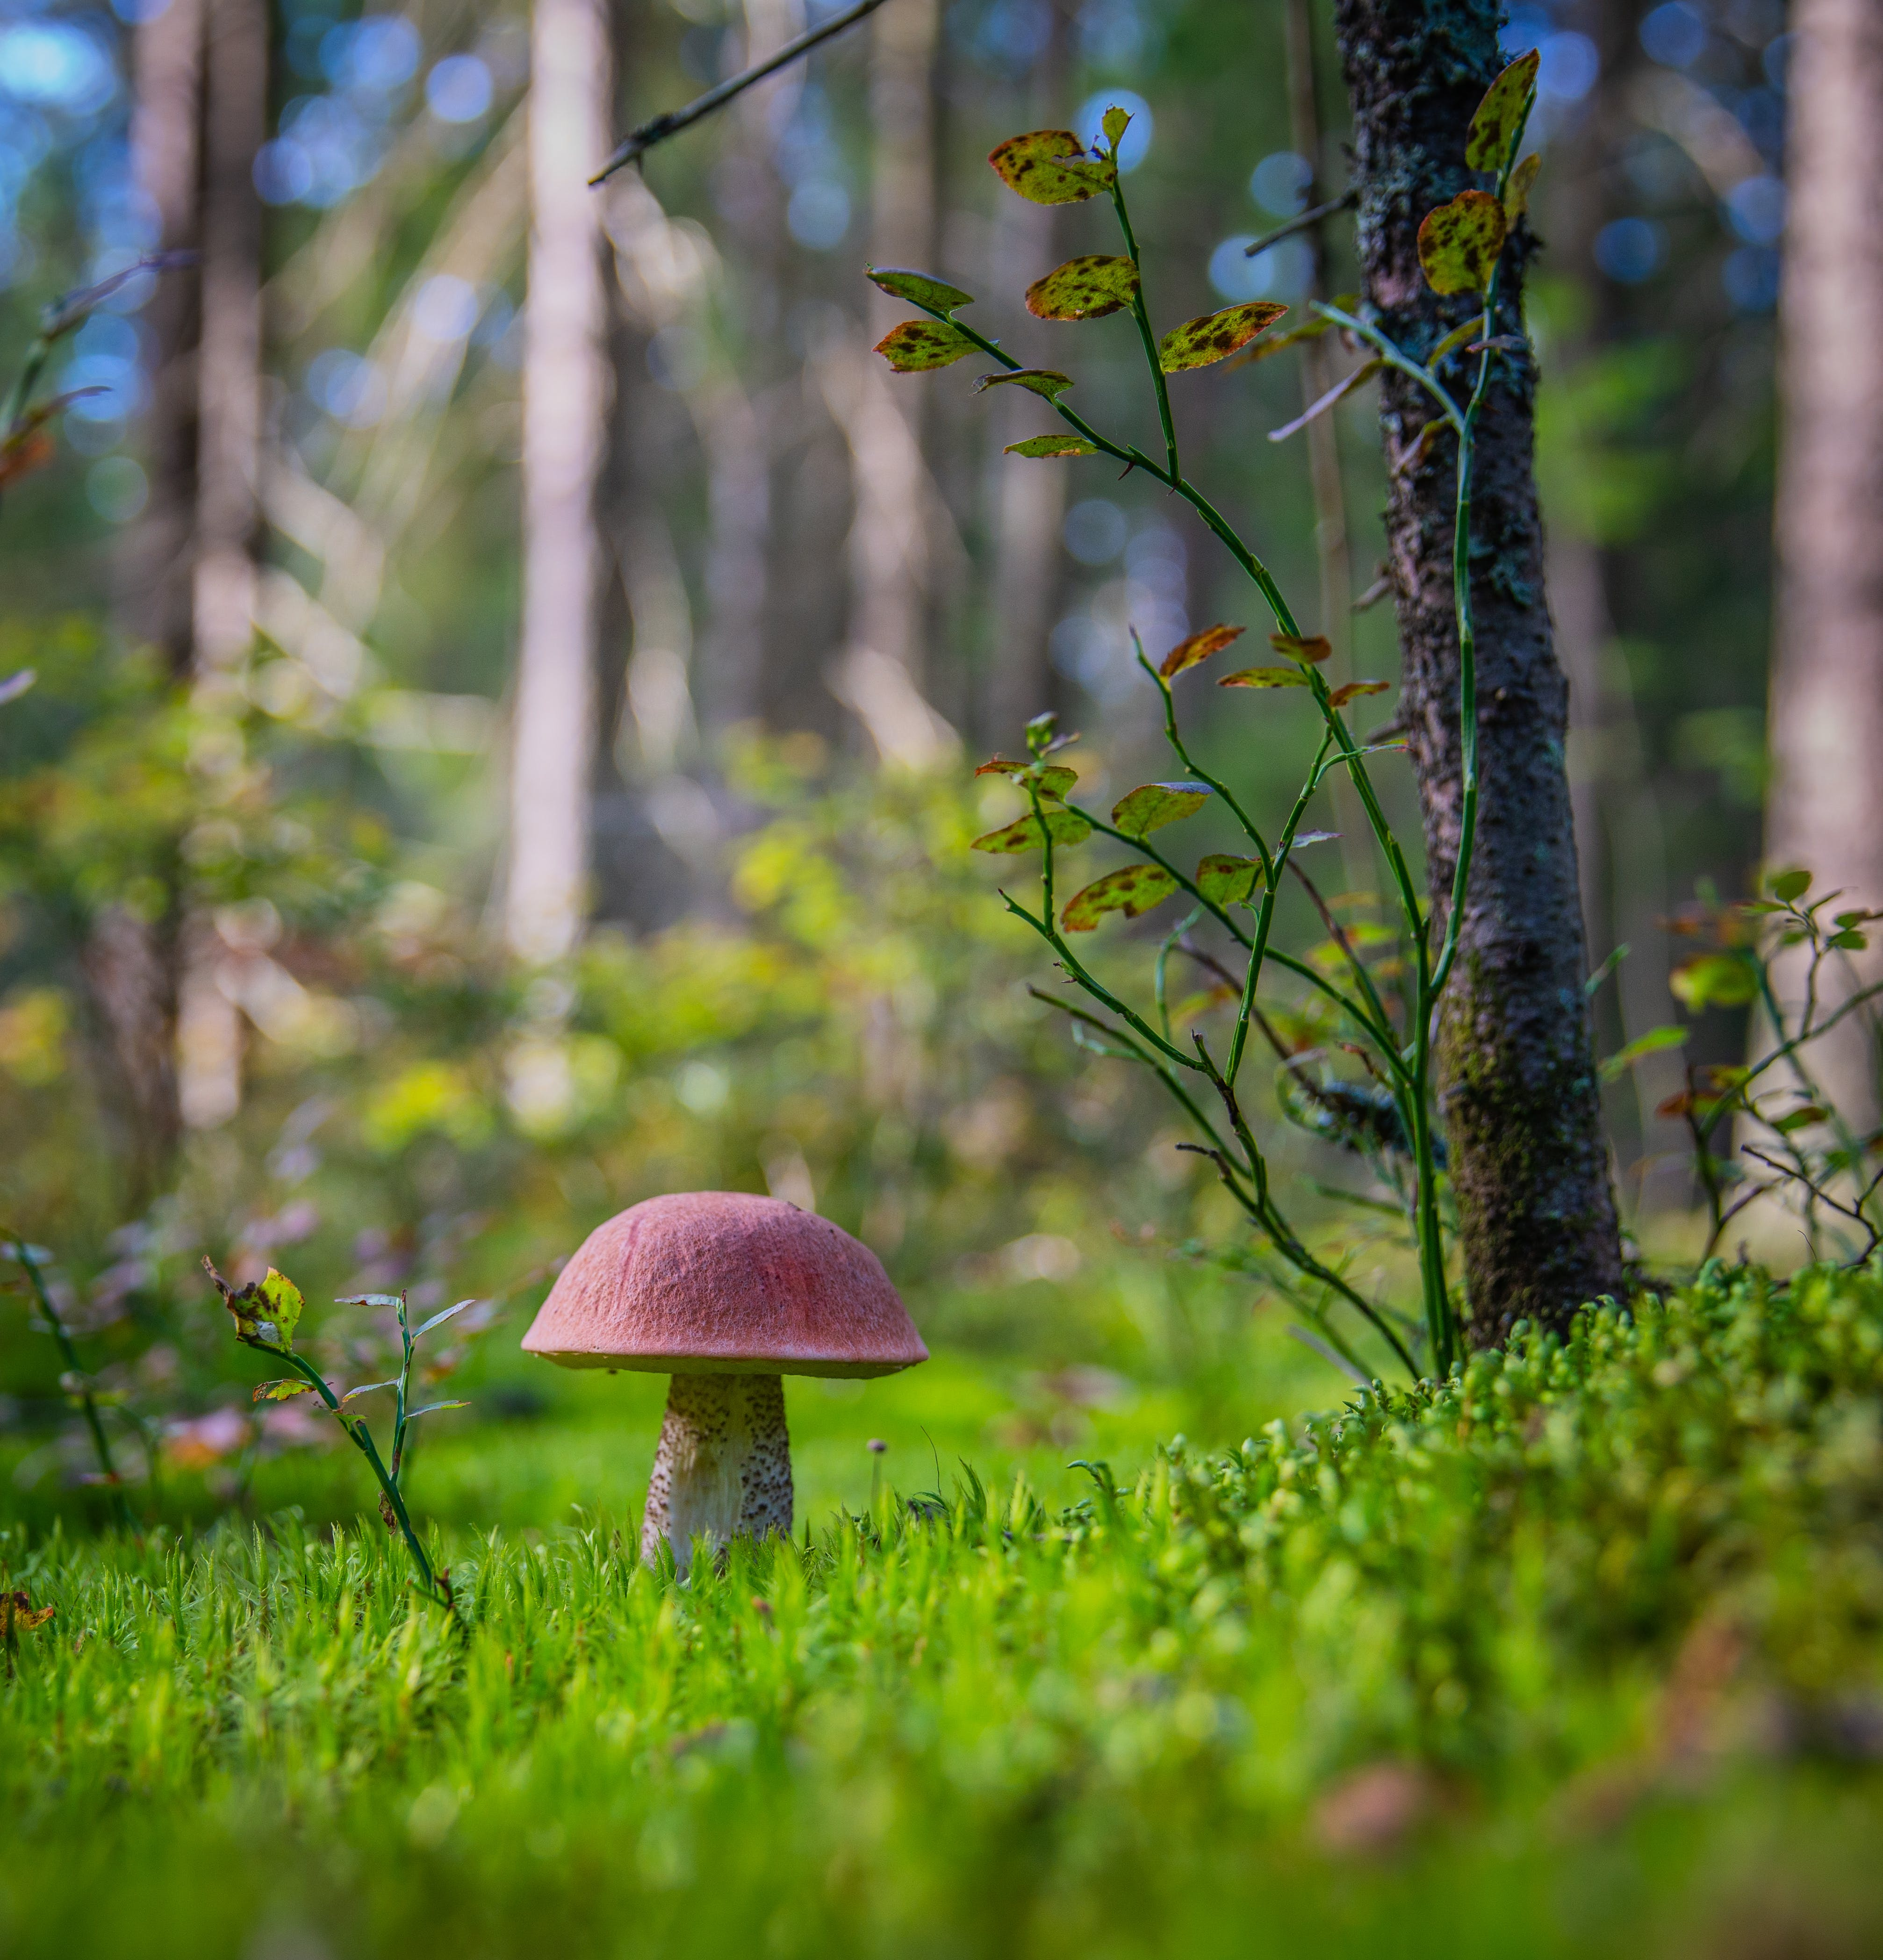 Red Mushroom on Grass Field Selective Focus Photography